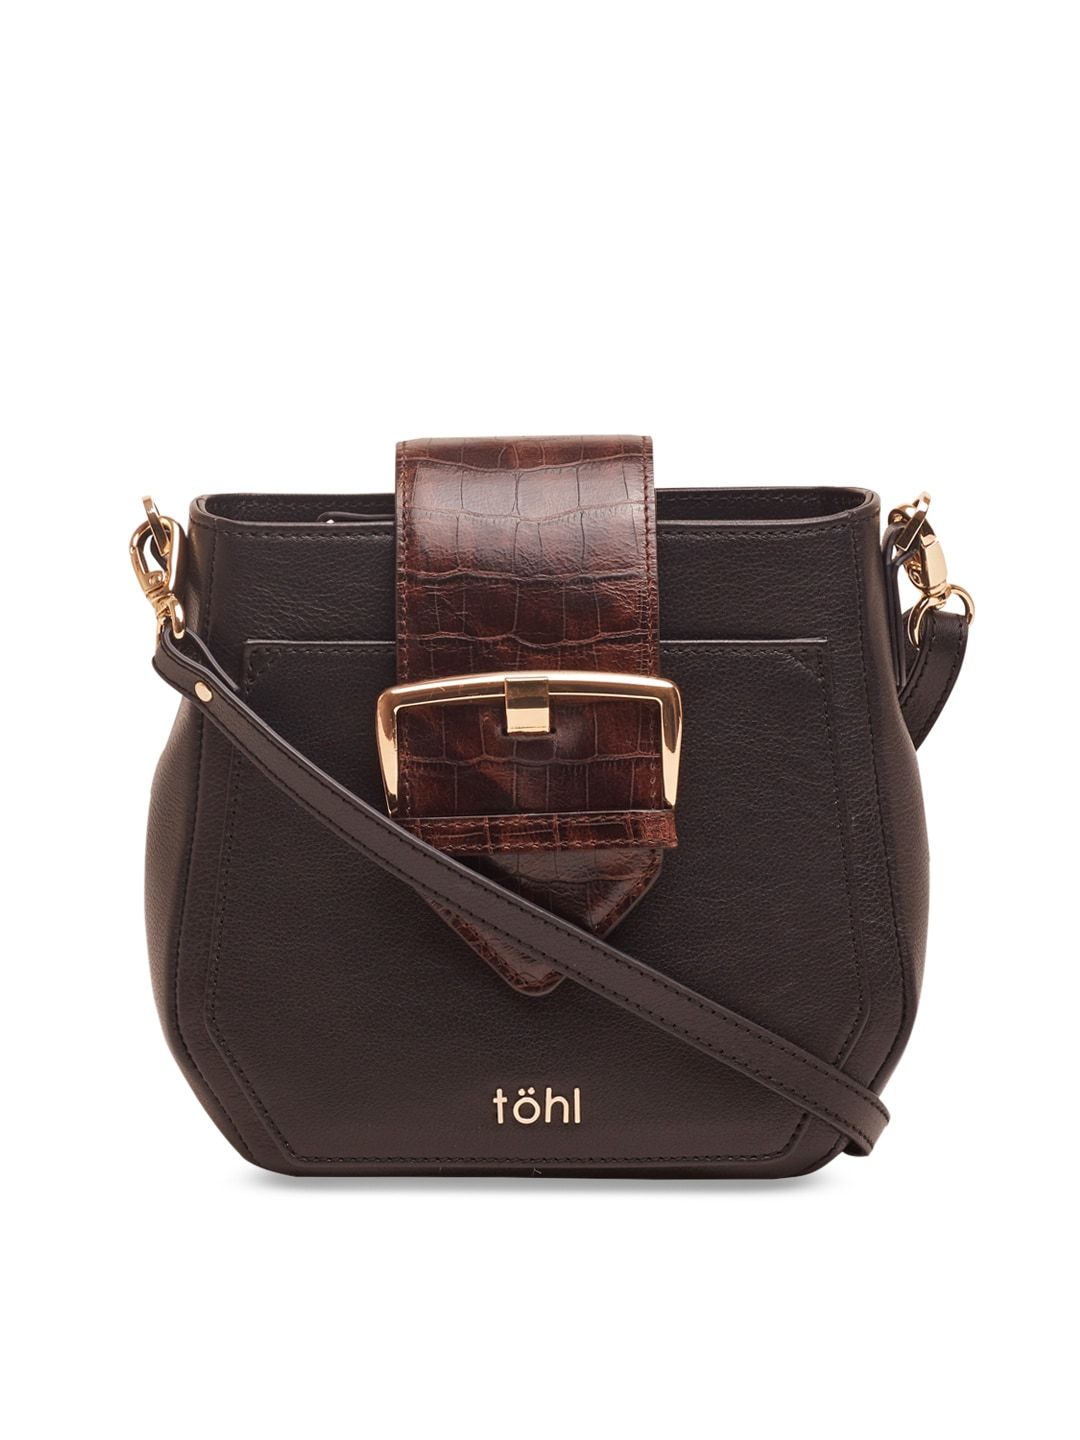 2a55949087ef Leather Handbags - Buy Leather Handbags Online